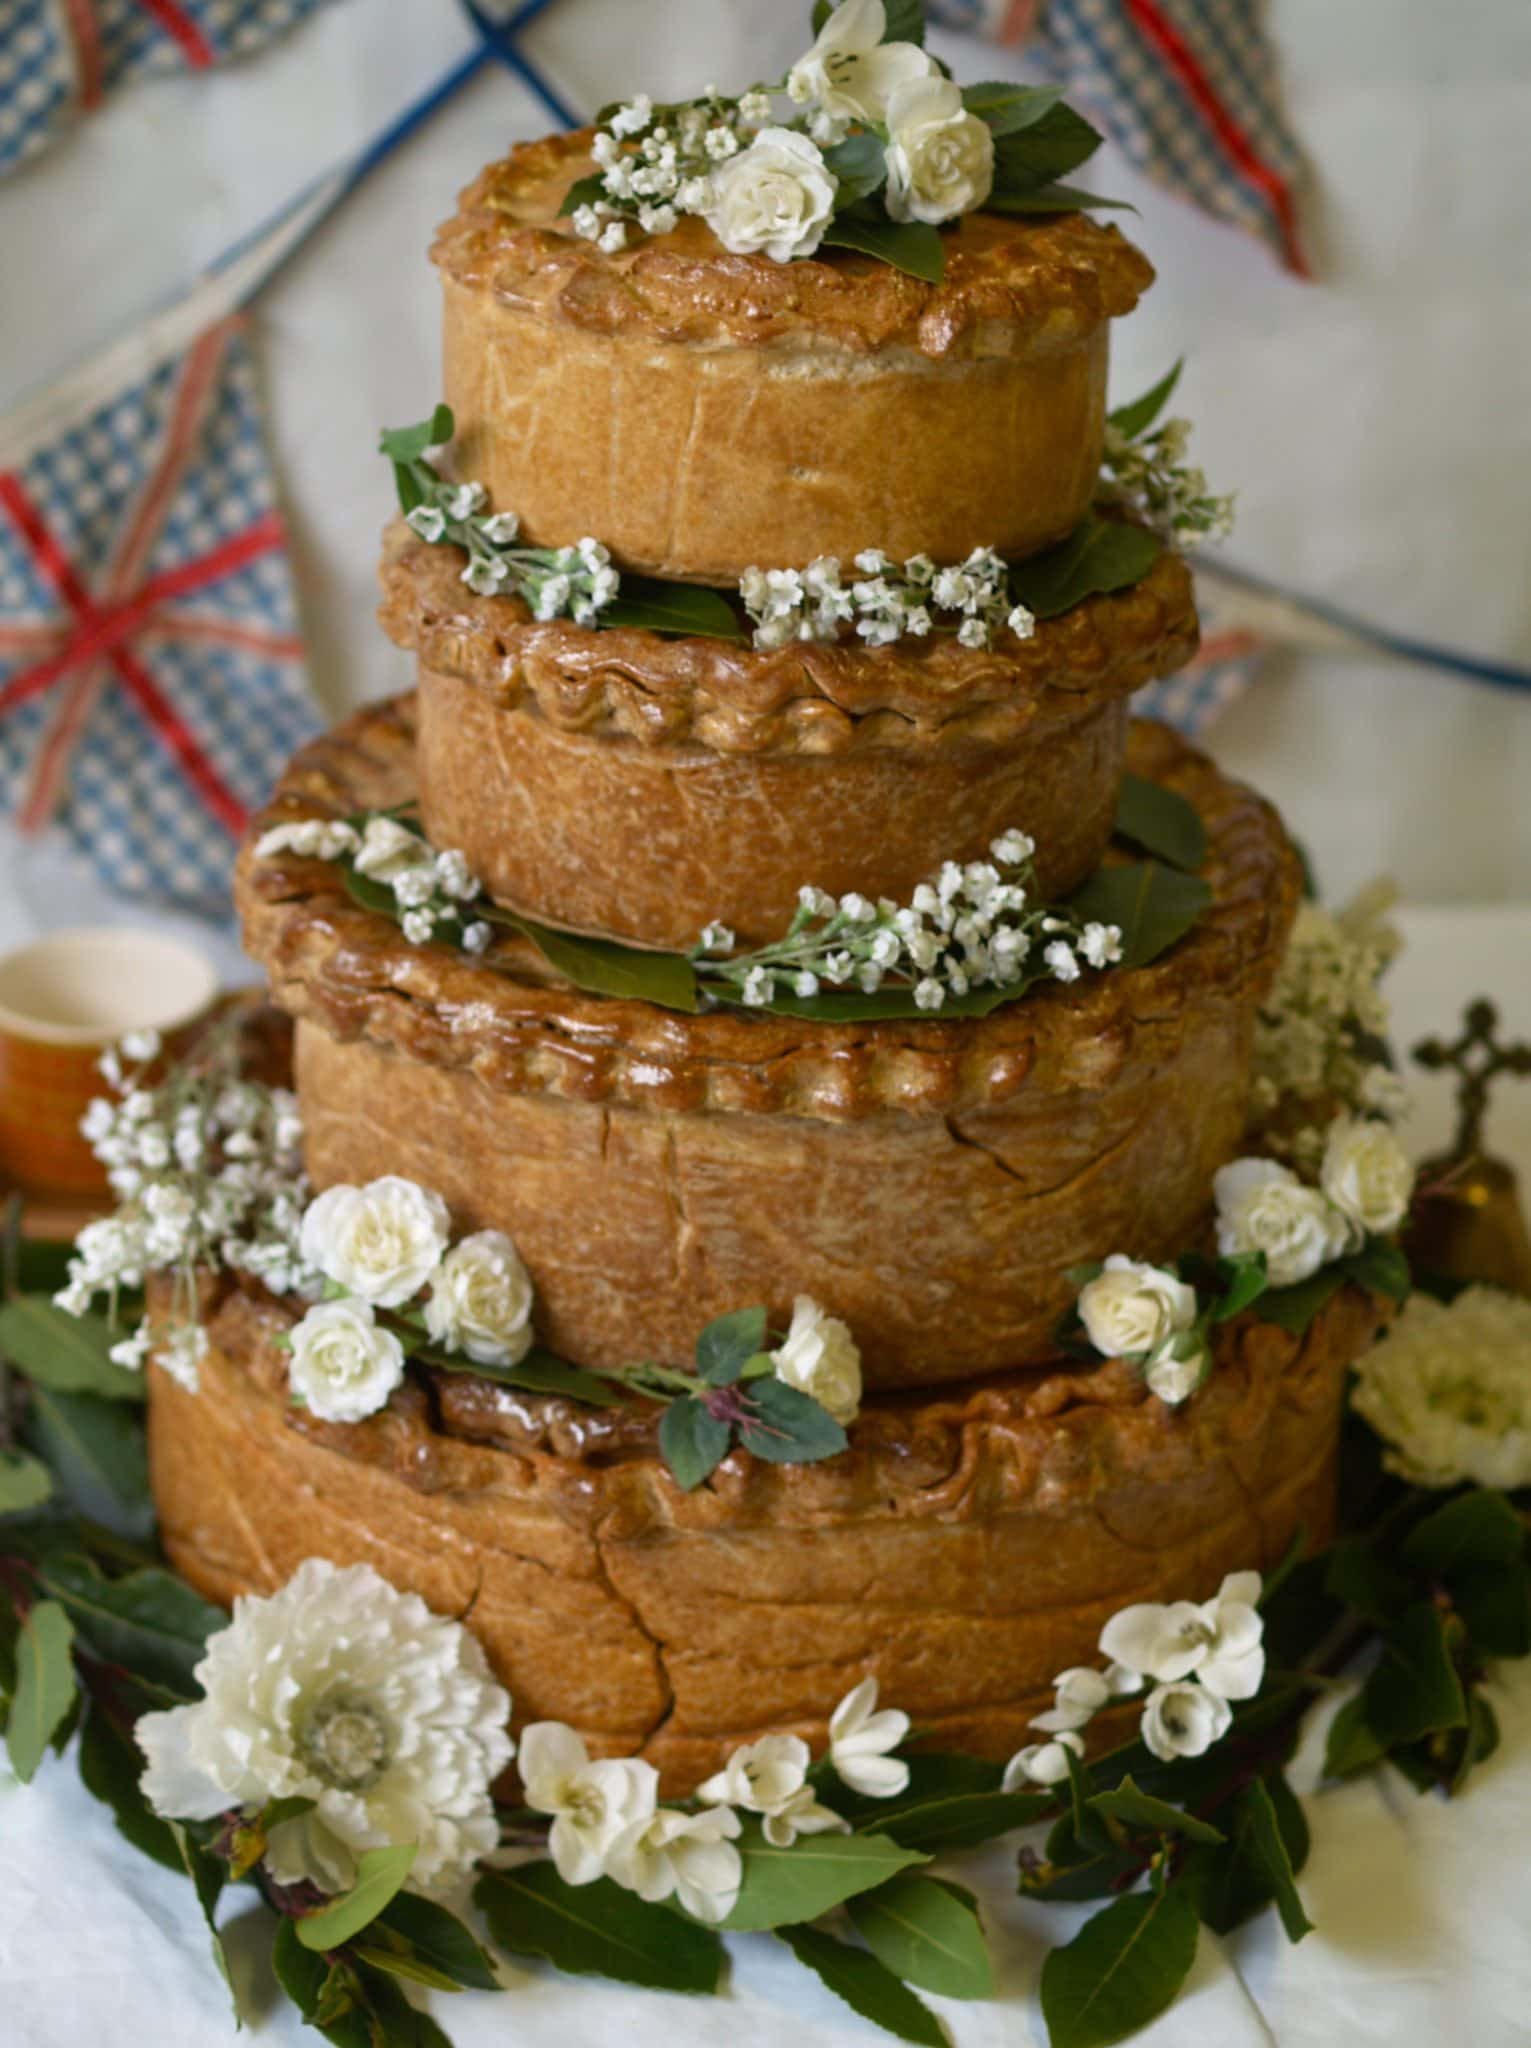 Tiered pork pie decorated with flowers - a savoury alternative to your wedding cake.